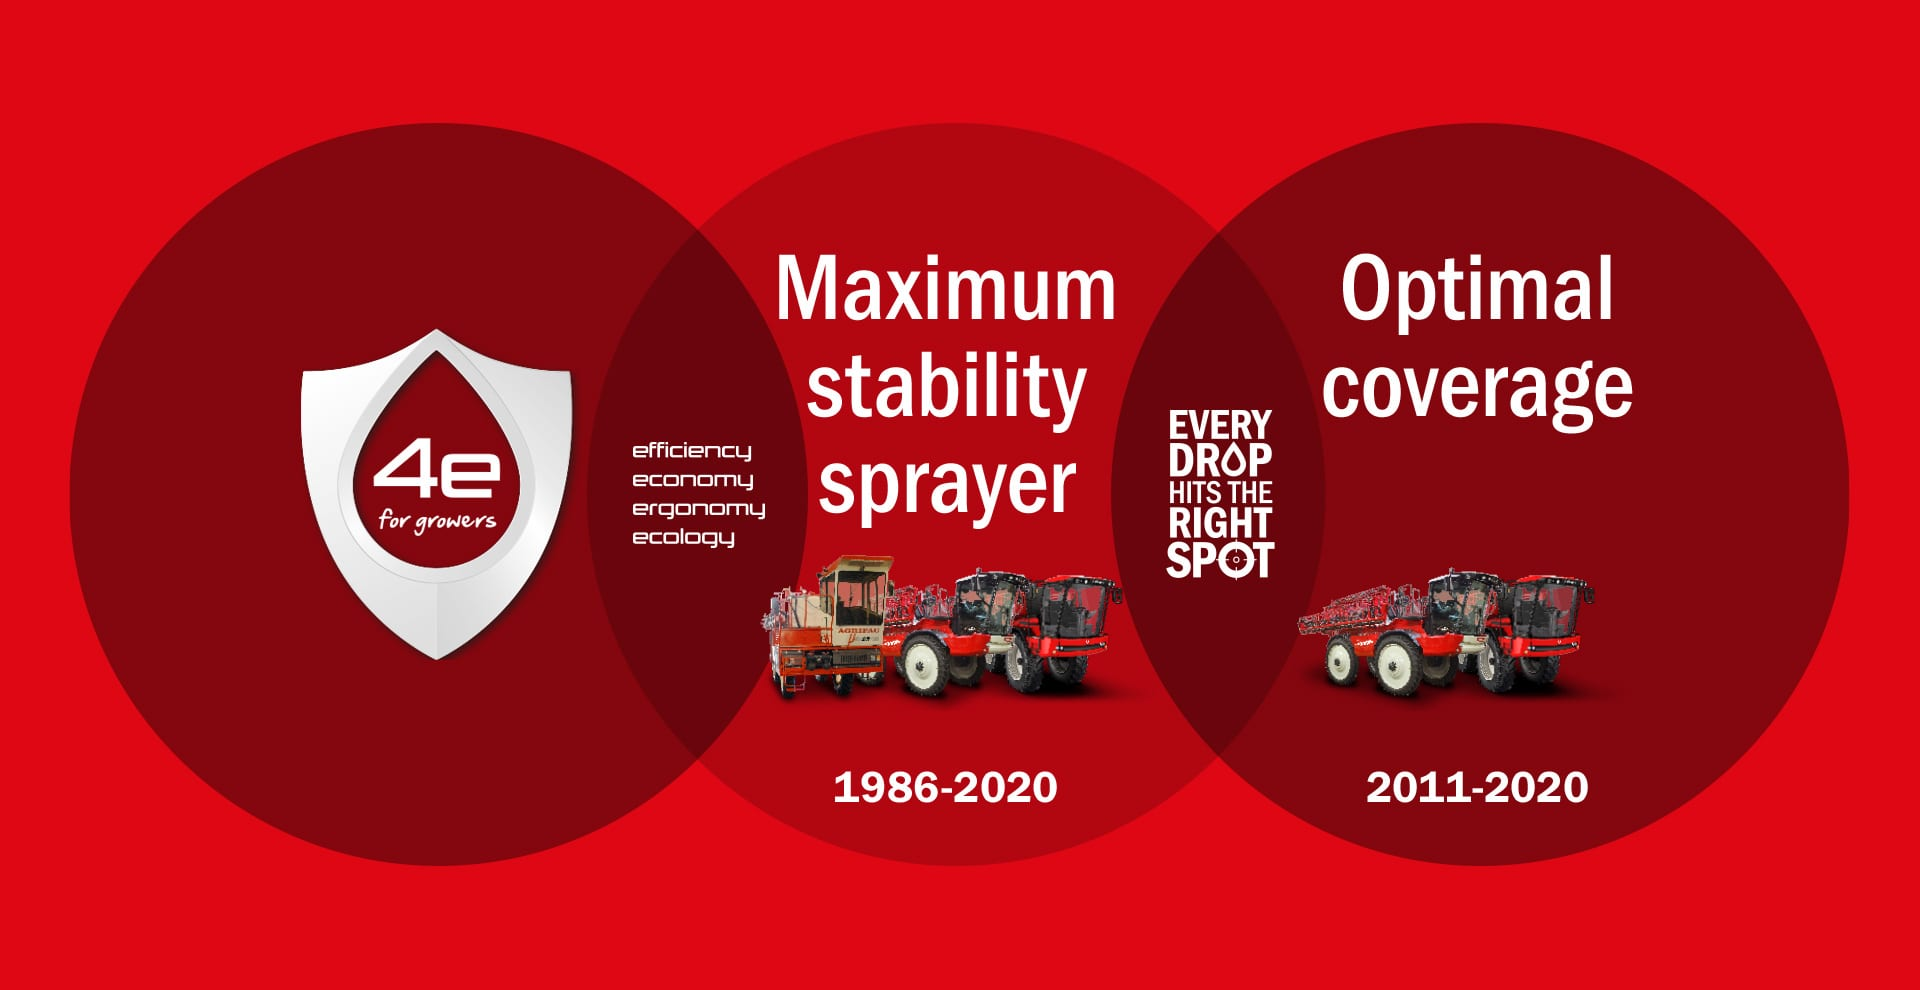 Agrifac 4e for Growers